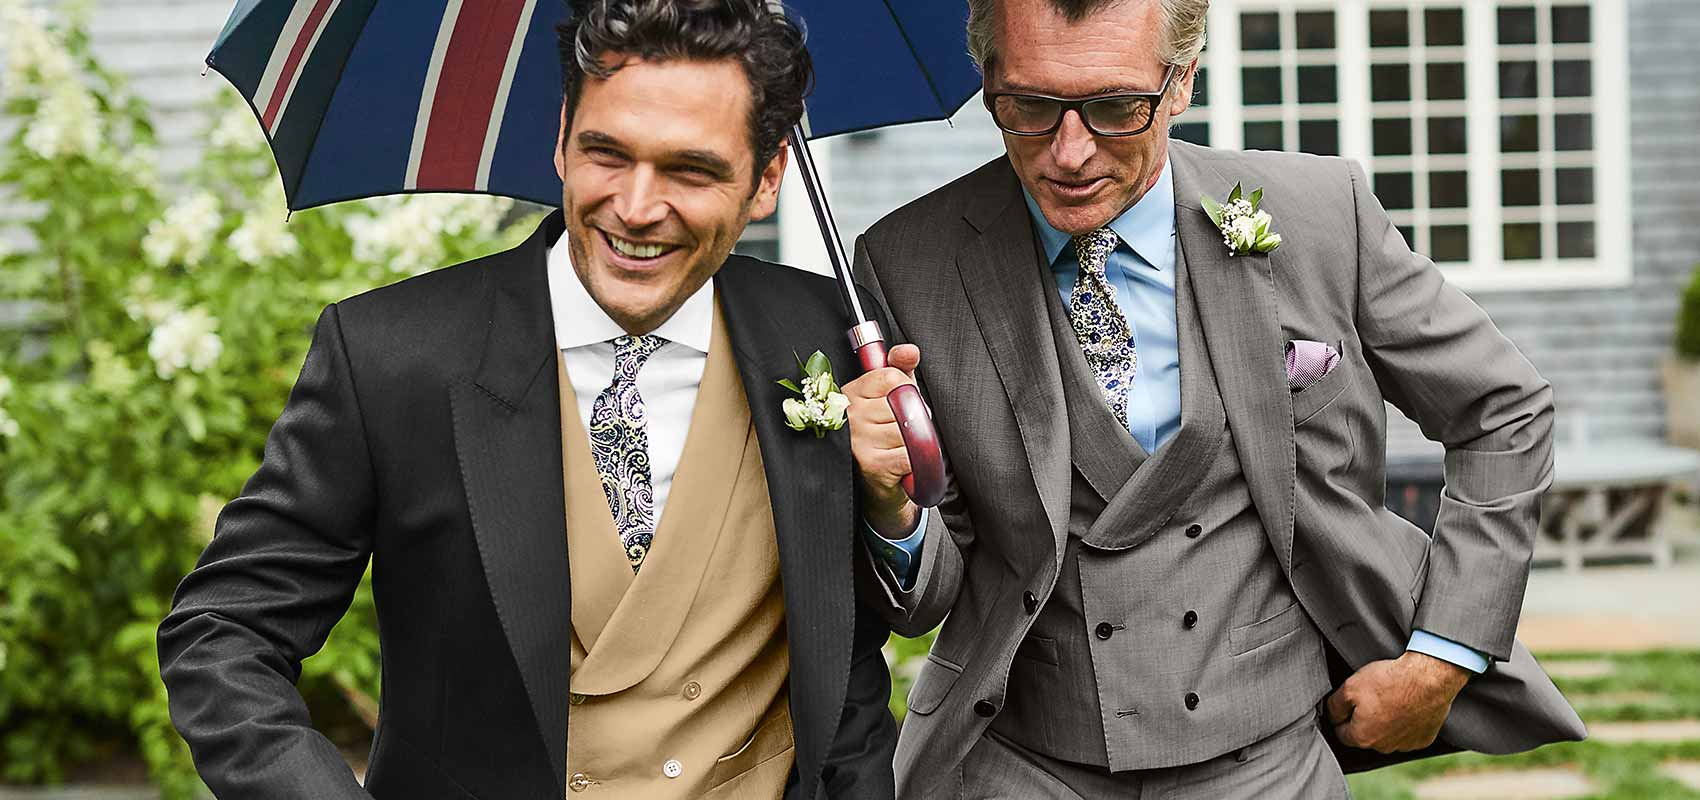 Charles Tyrwhitt three piece suits